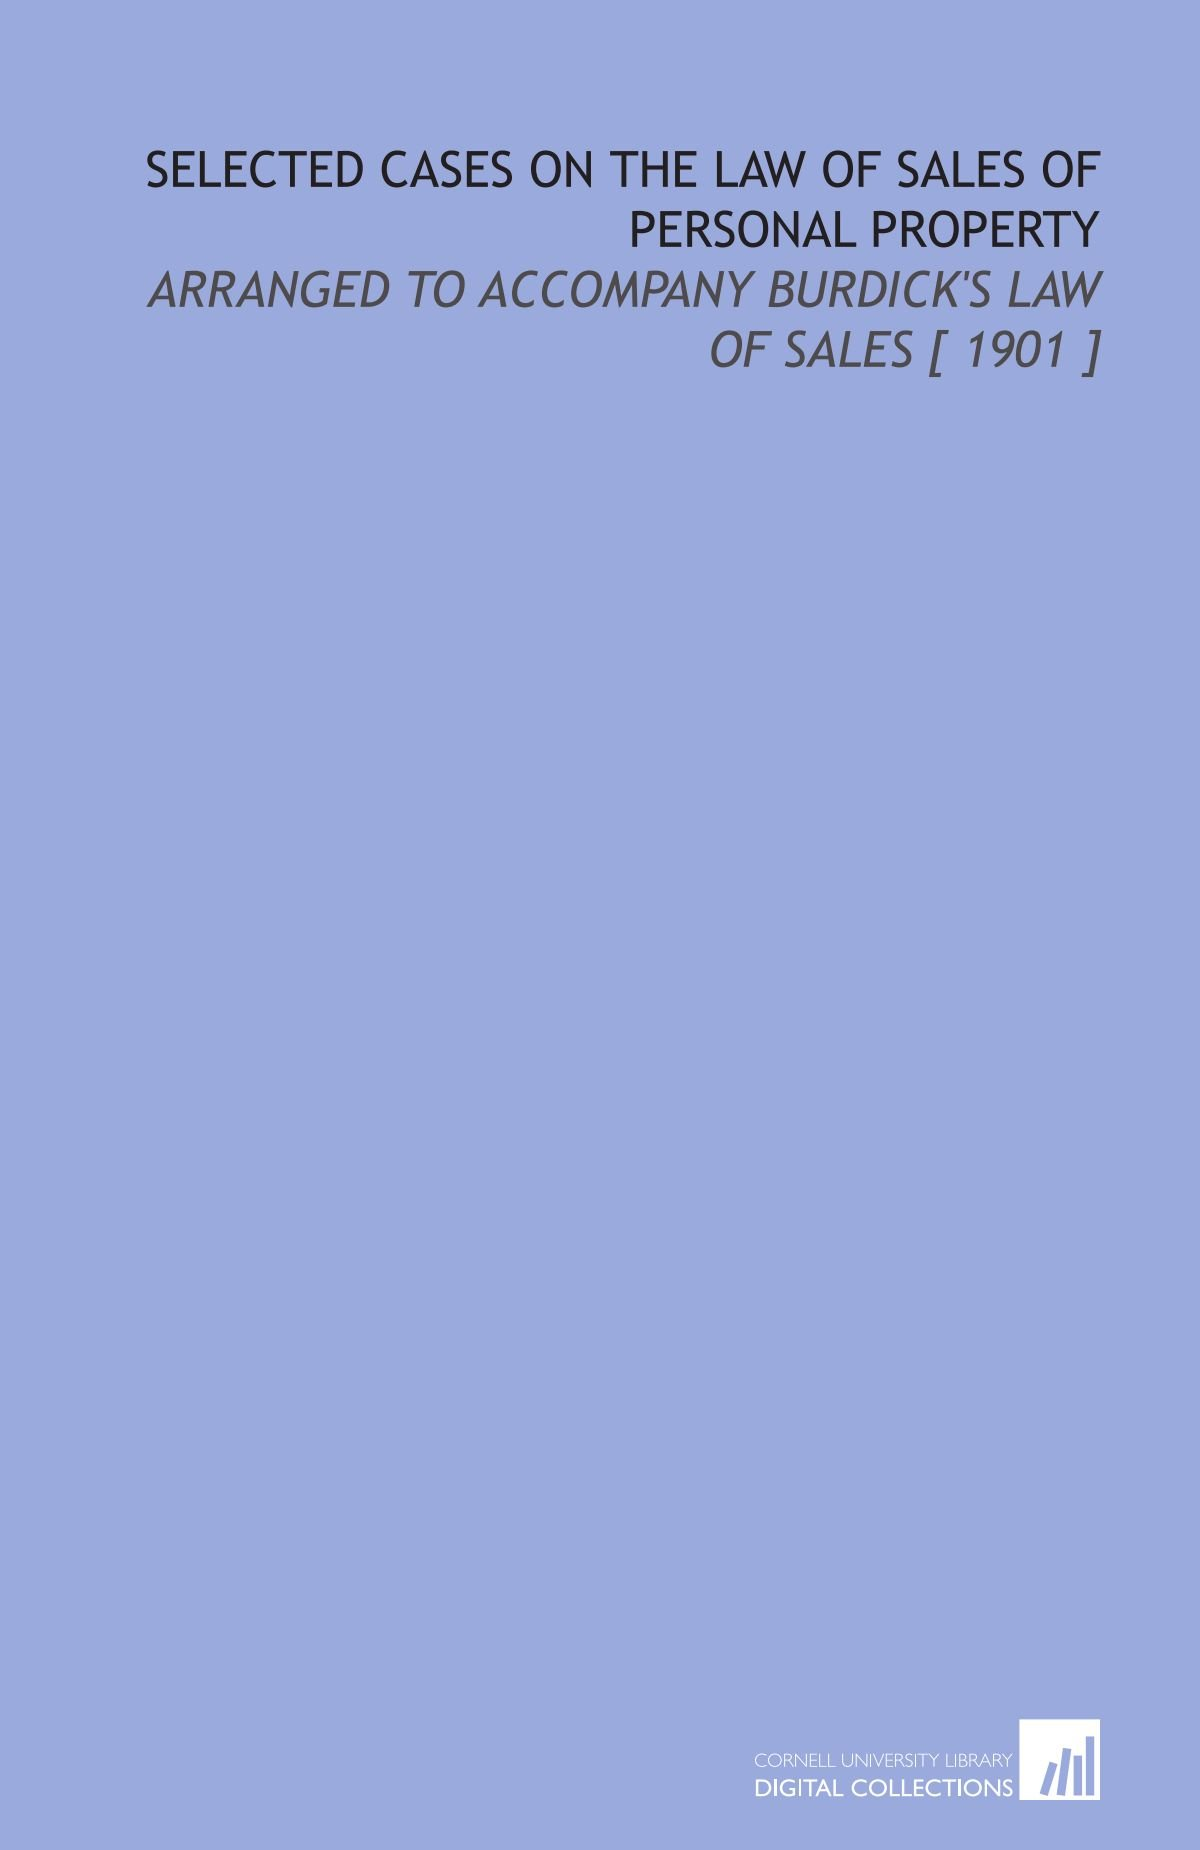 Download Selected Cases on the Law of Sales of Personal Property: Arranged to Accompany Burdick's Law of Sales [ 1901 ] ebook